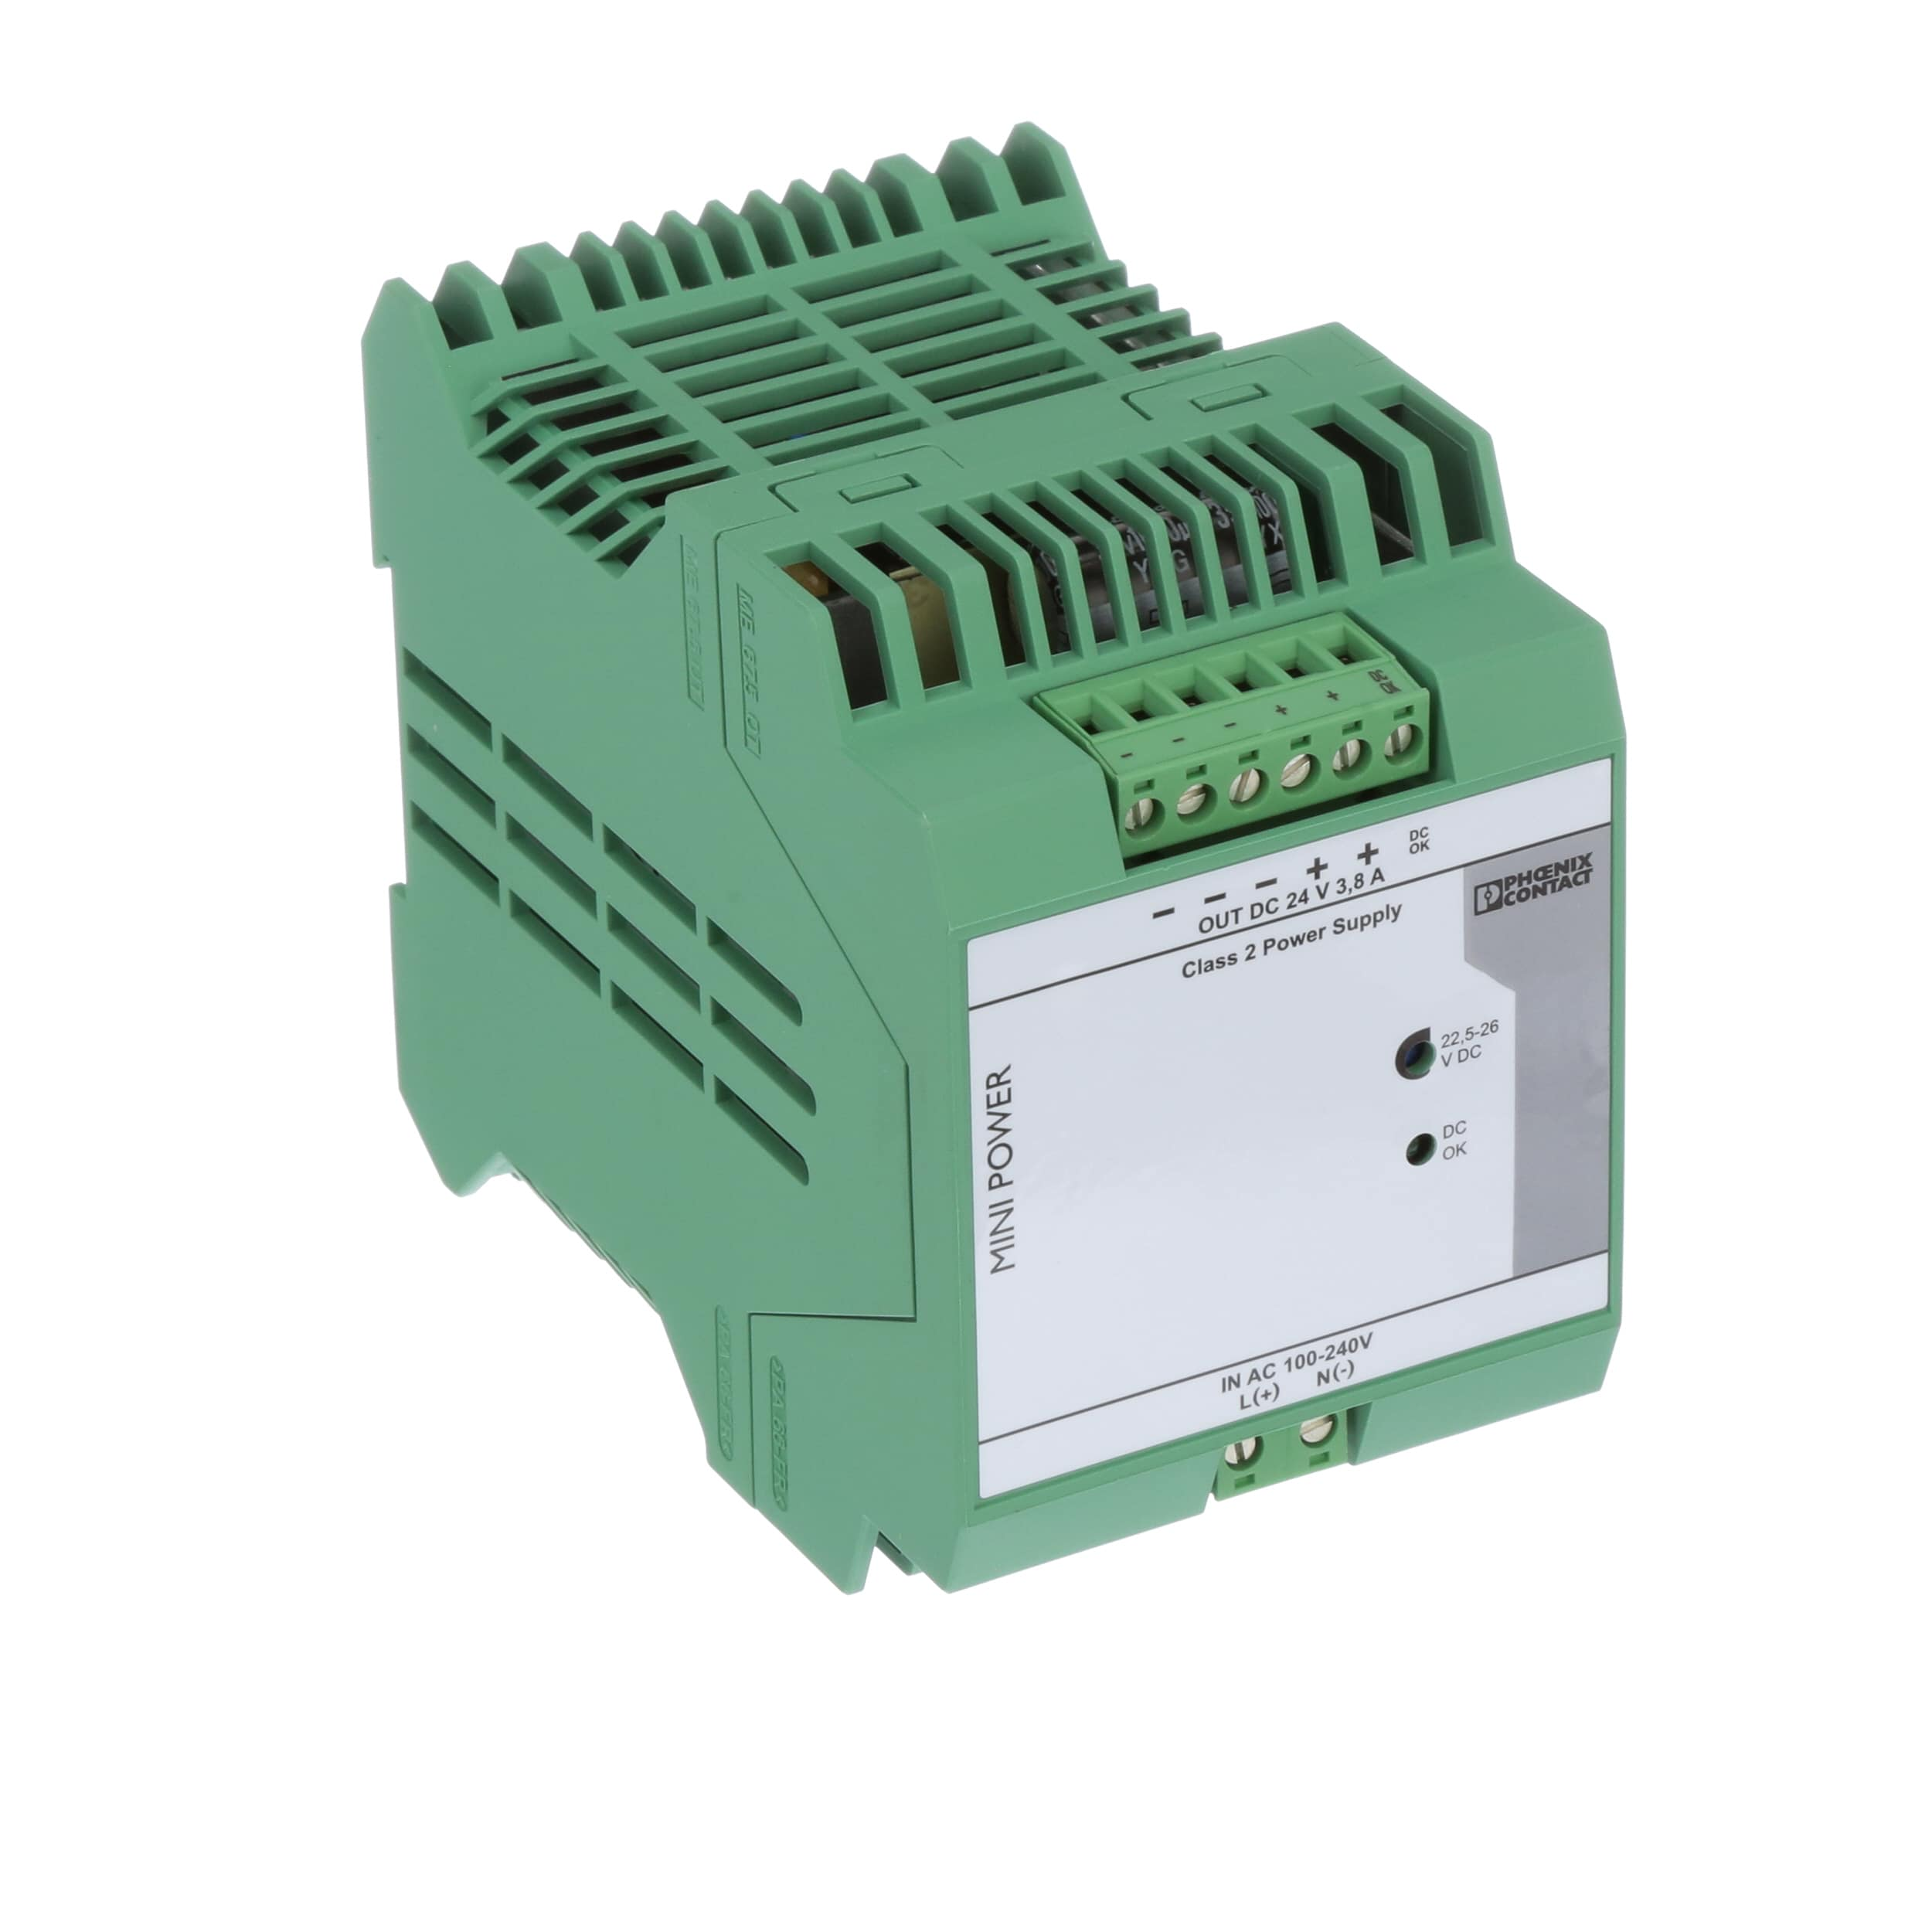 Phoenix Contact 2866336 Power Supply Ac Dc 24v 38a 85 264v 24 Volts To In Enclosed Din Rail Mount 91w Mini Series Allied Electronics Automation